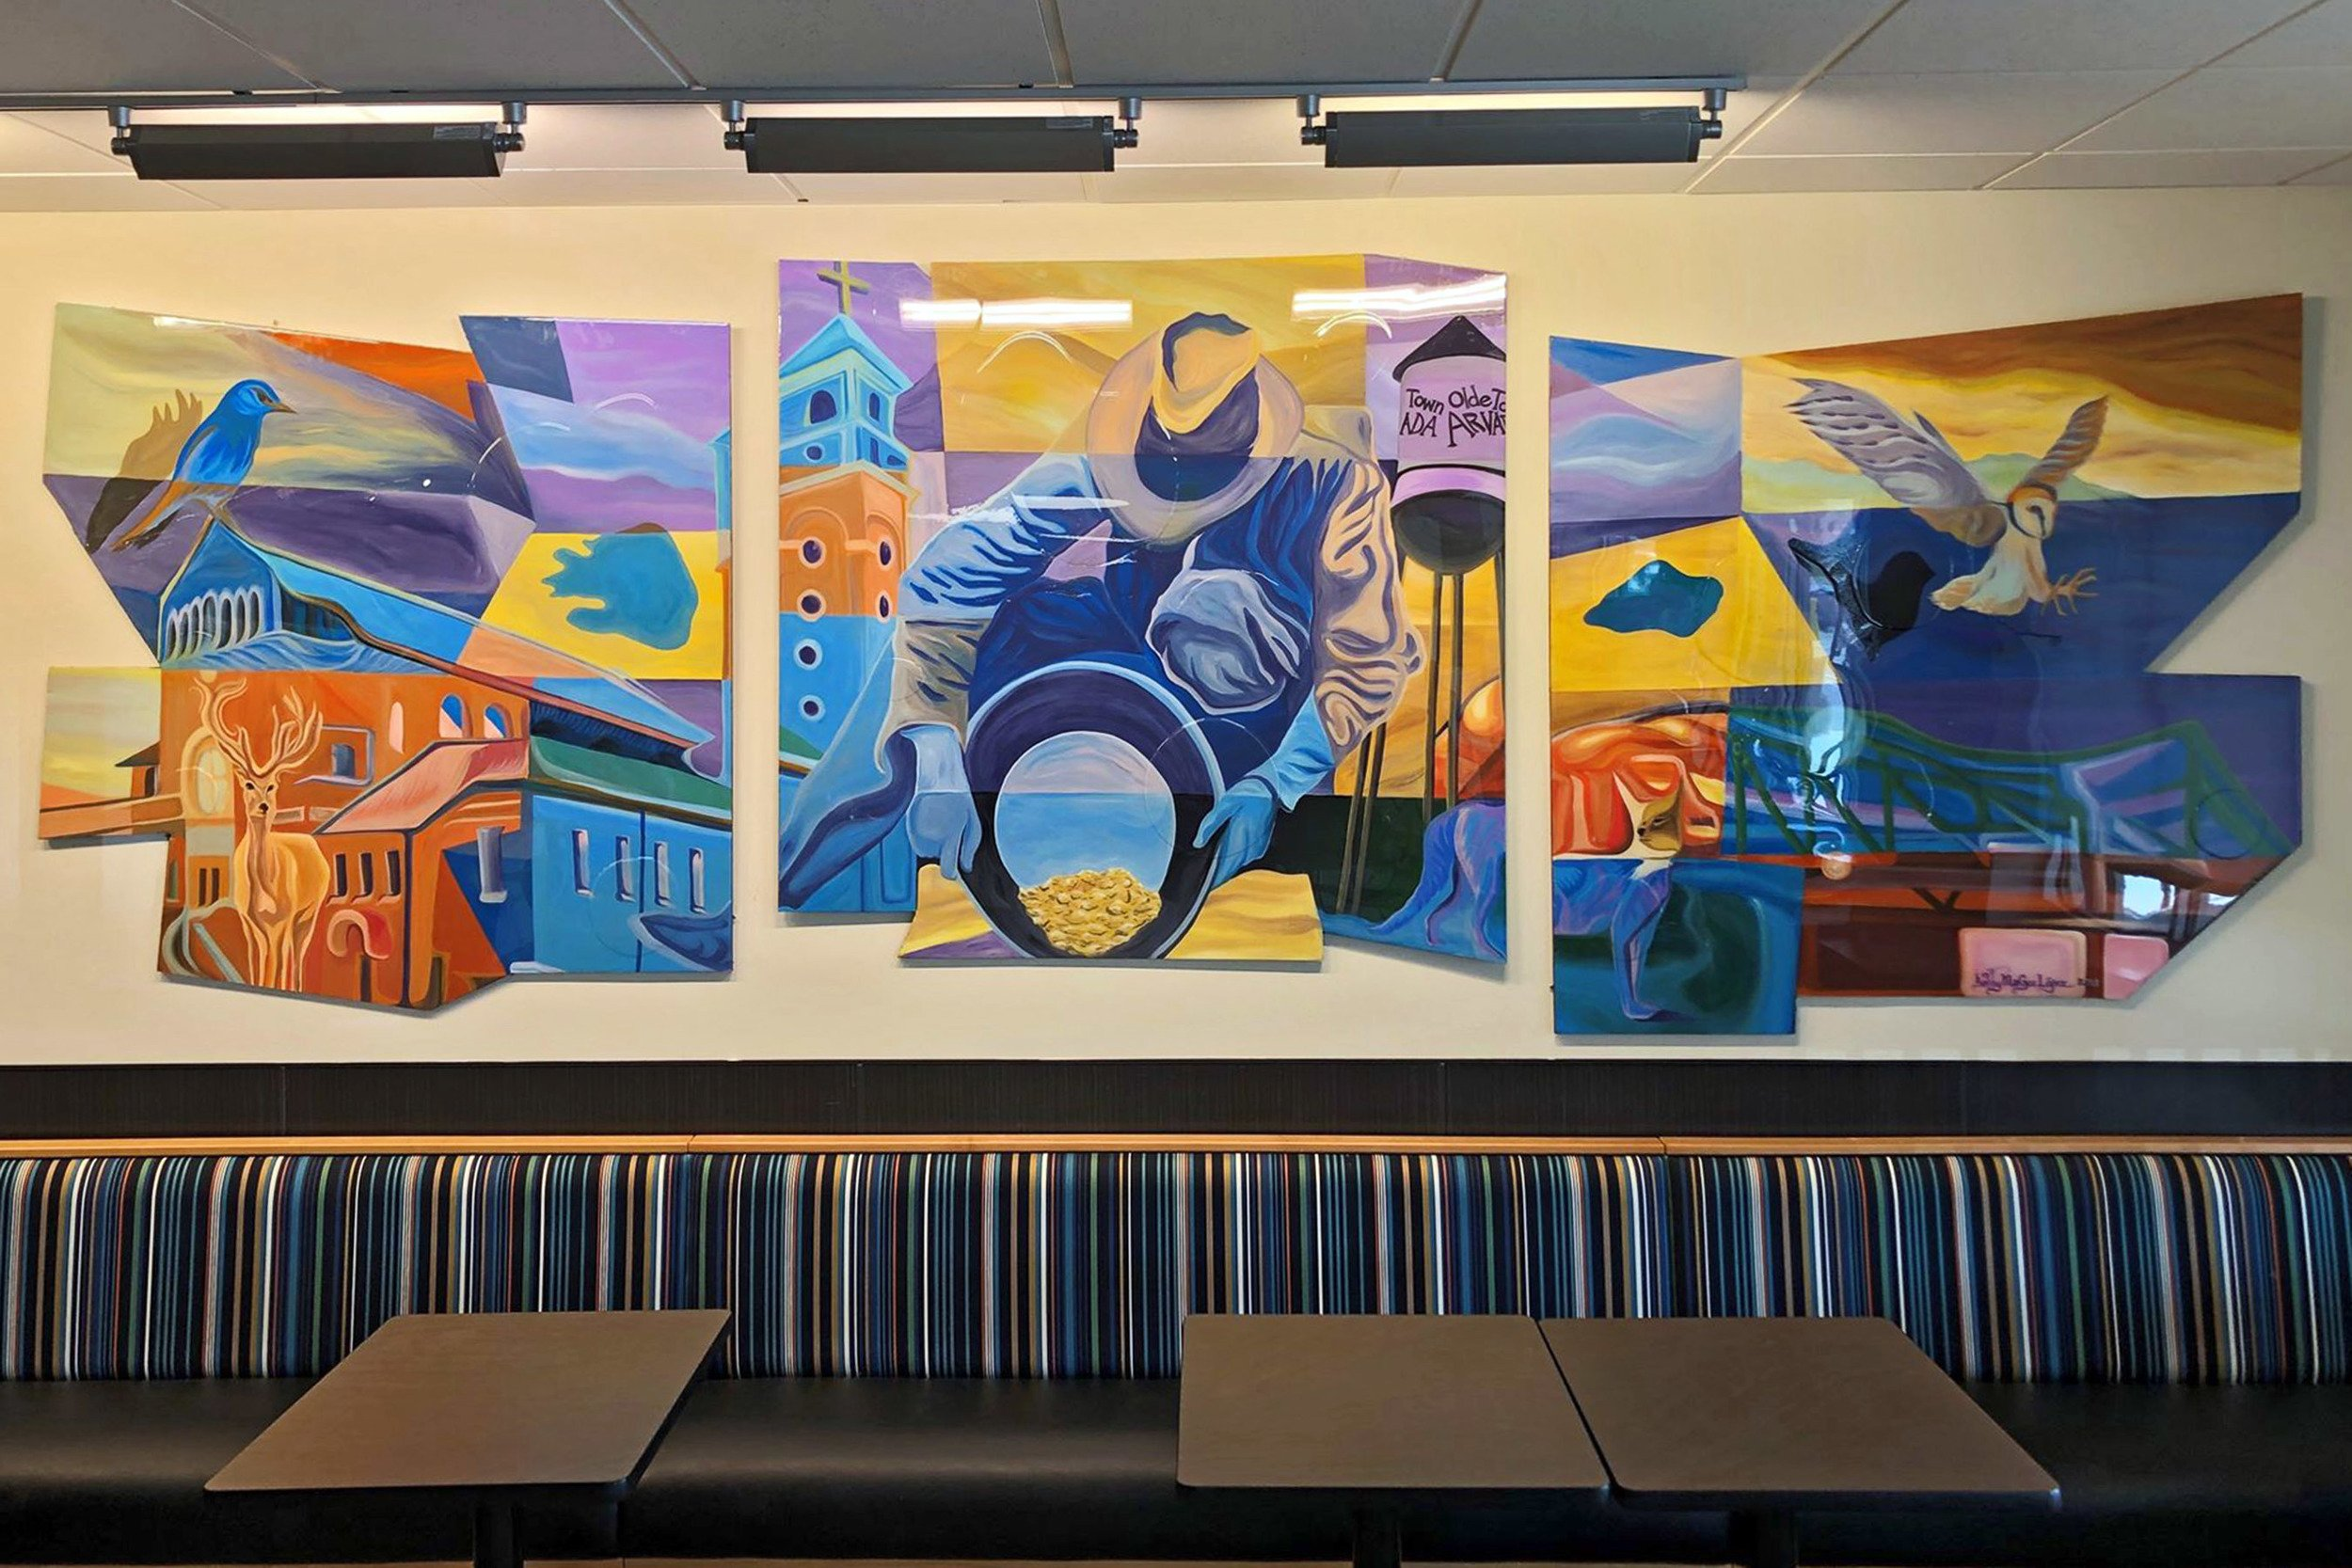 Carbondale Arts teams up with Kroger for art installation thumbnail